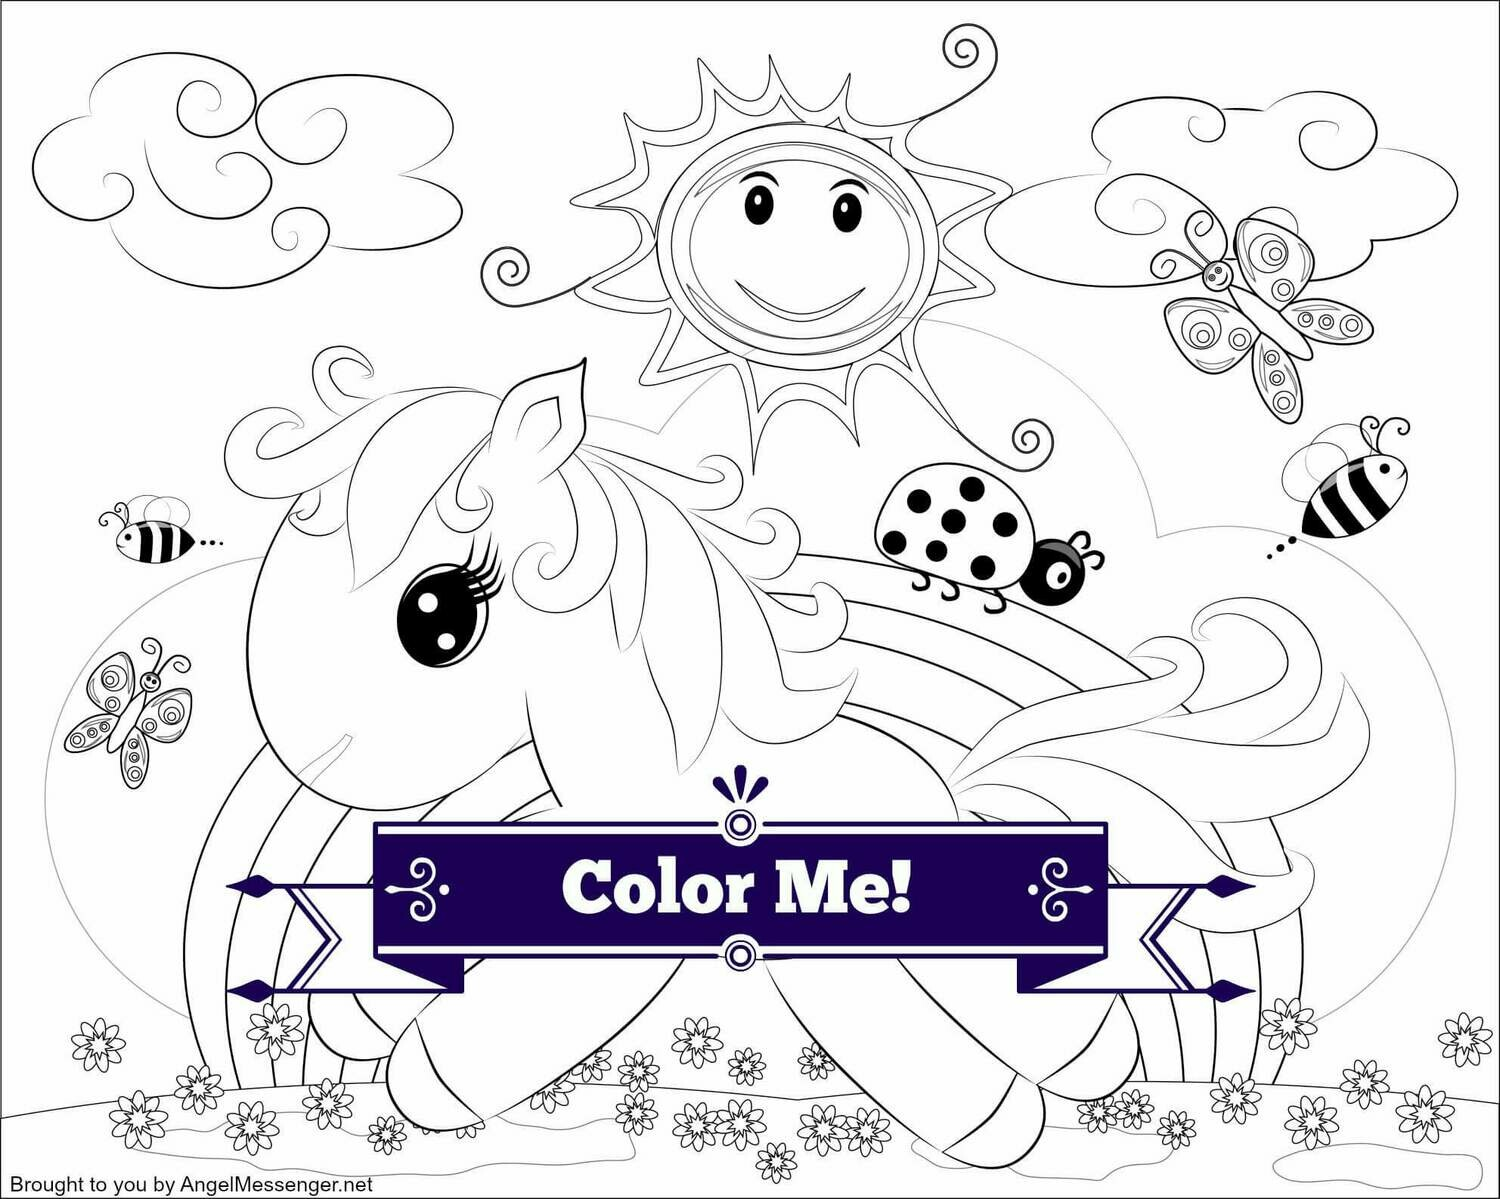 Rainbow Pony Coloring Page (for kids)